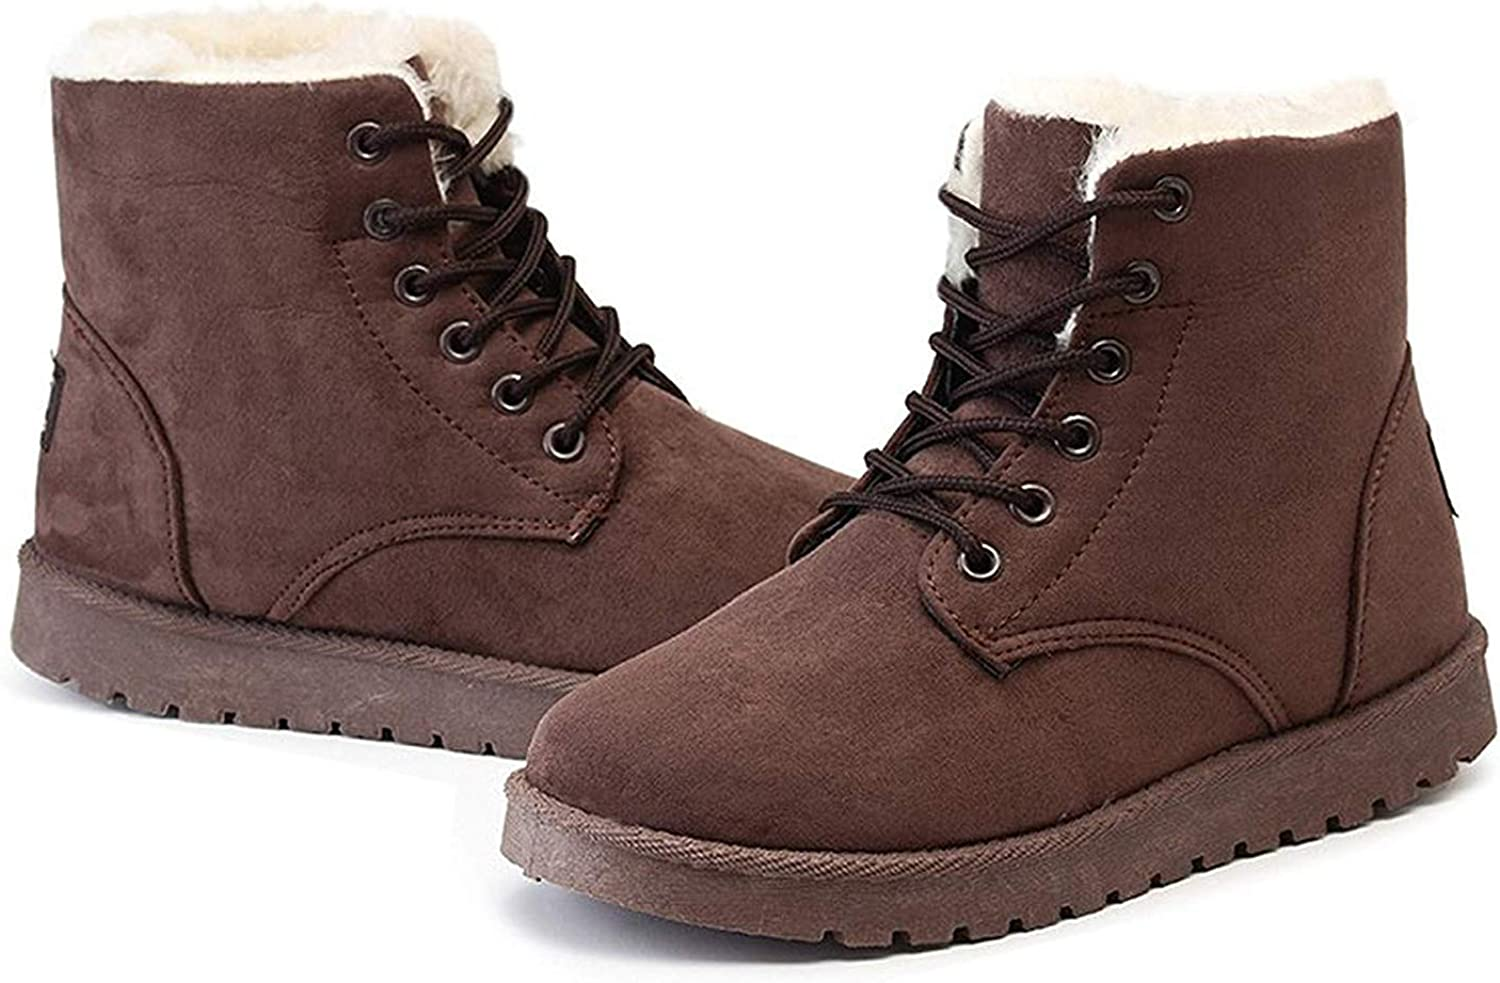 SmarketL Classic Women Winter Boots Suede Ankle Snow Female Warm Fur Plush Insole Boots,Make,Brown,